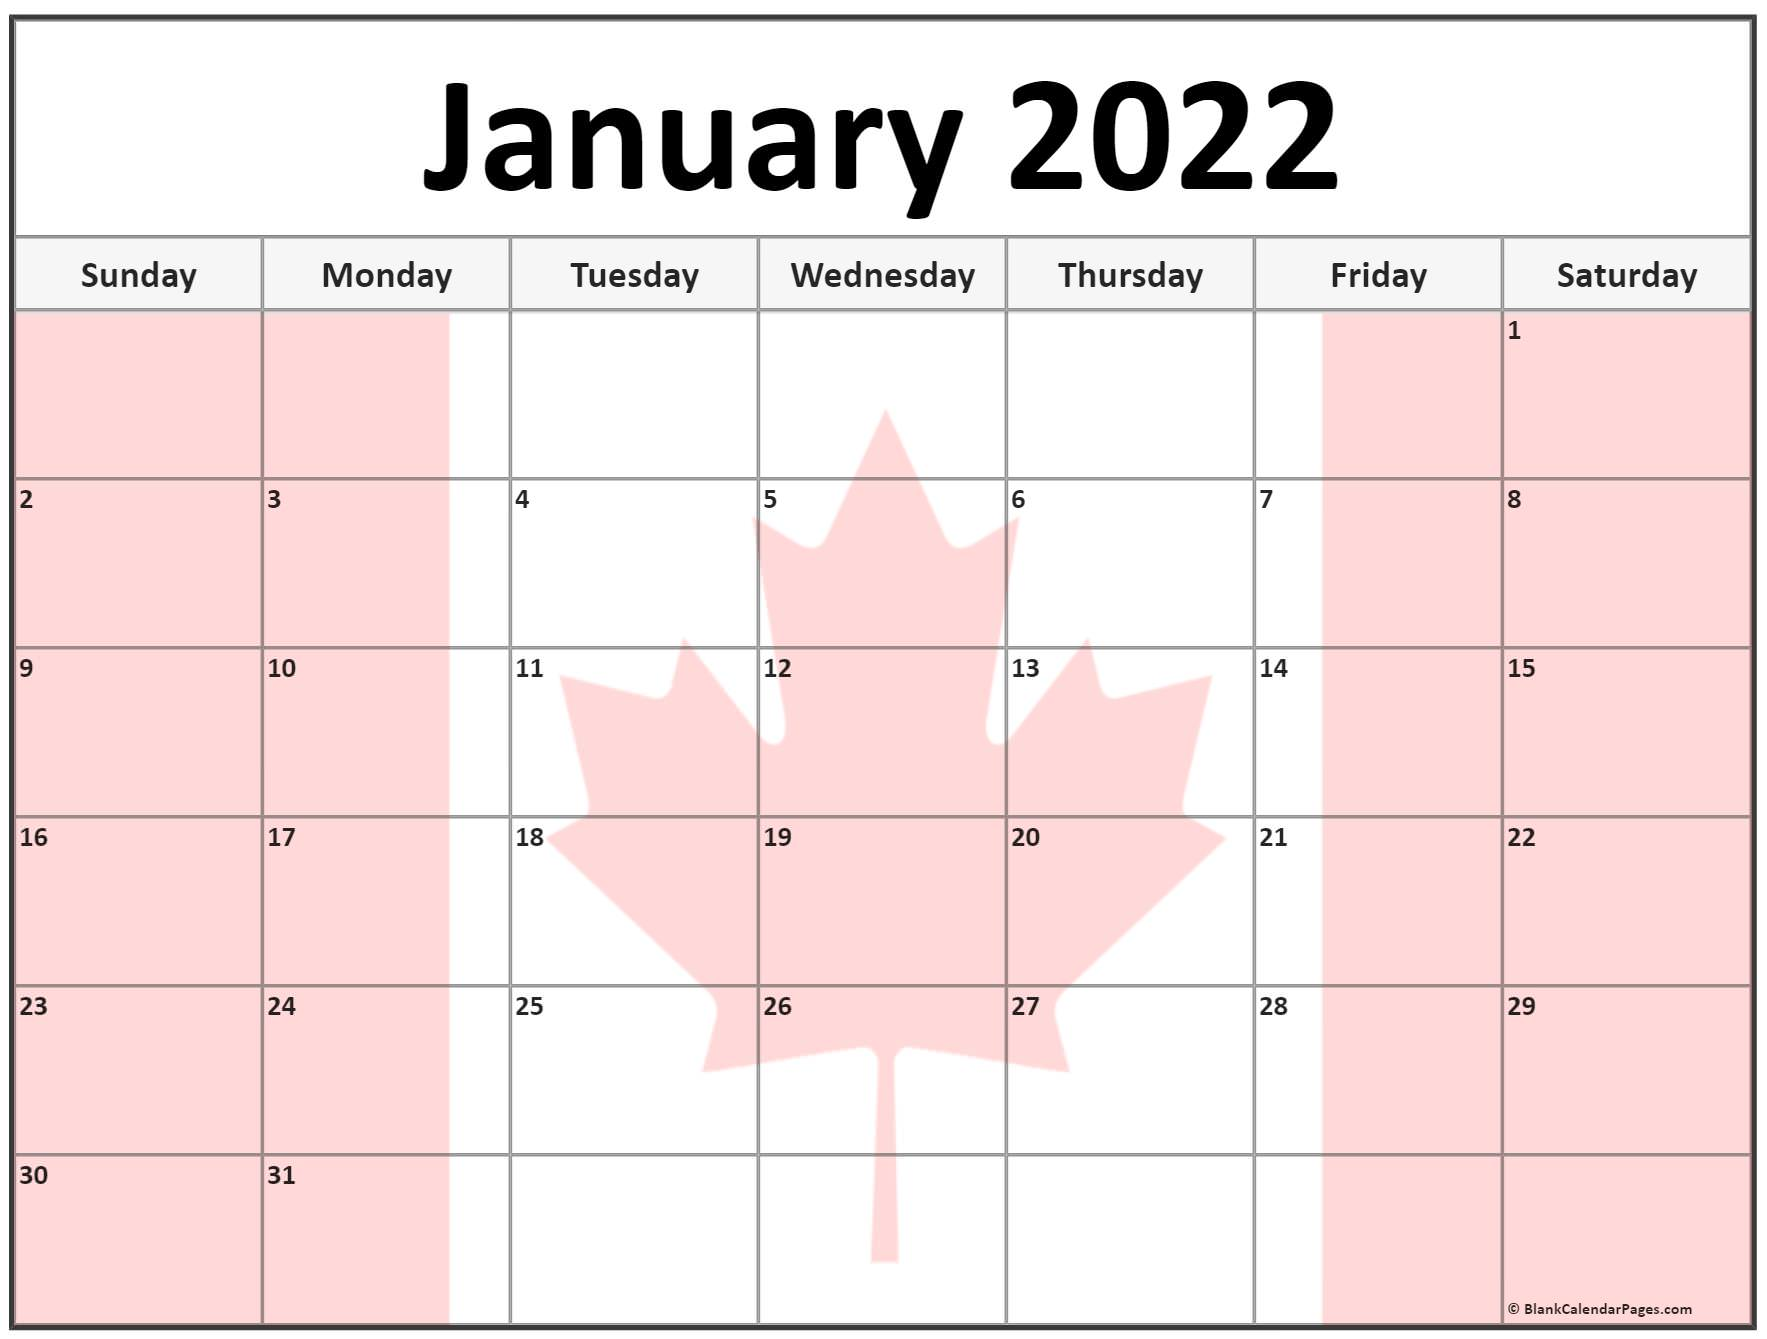 These include monthly calendars and even complete 2021 planners. Collection of January 2022 photo calendars with image filters.